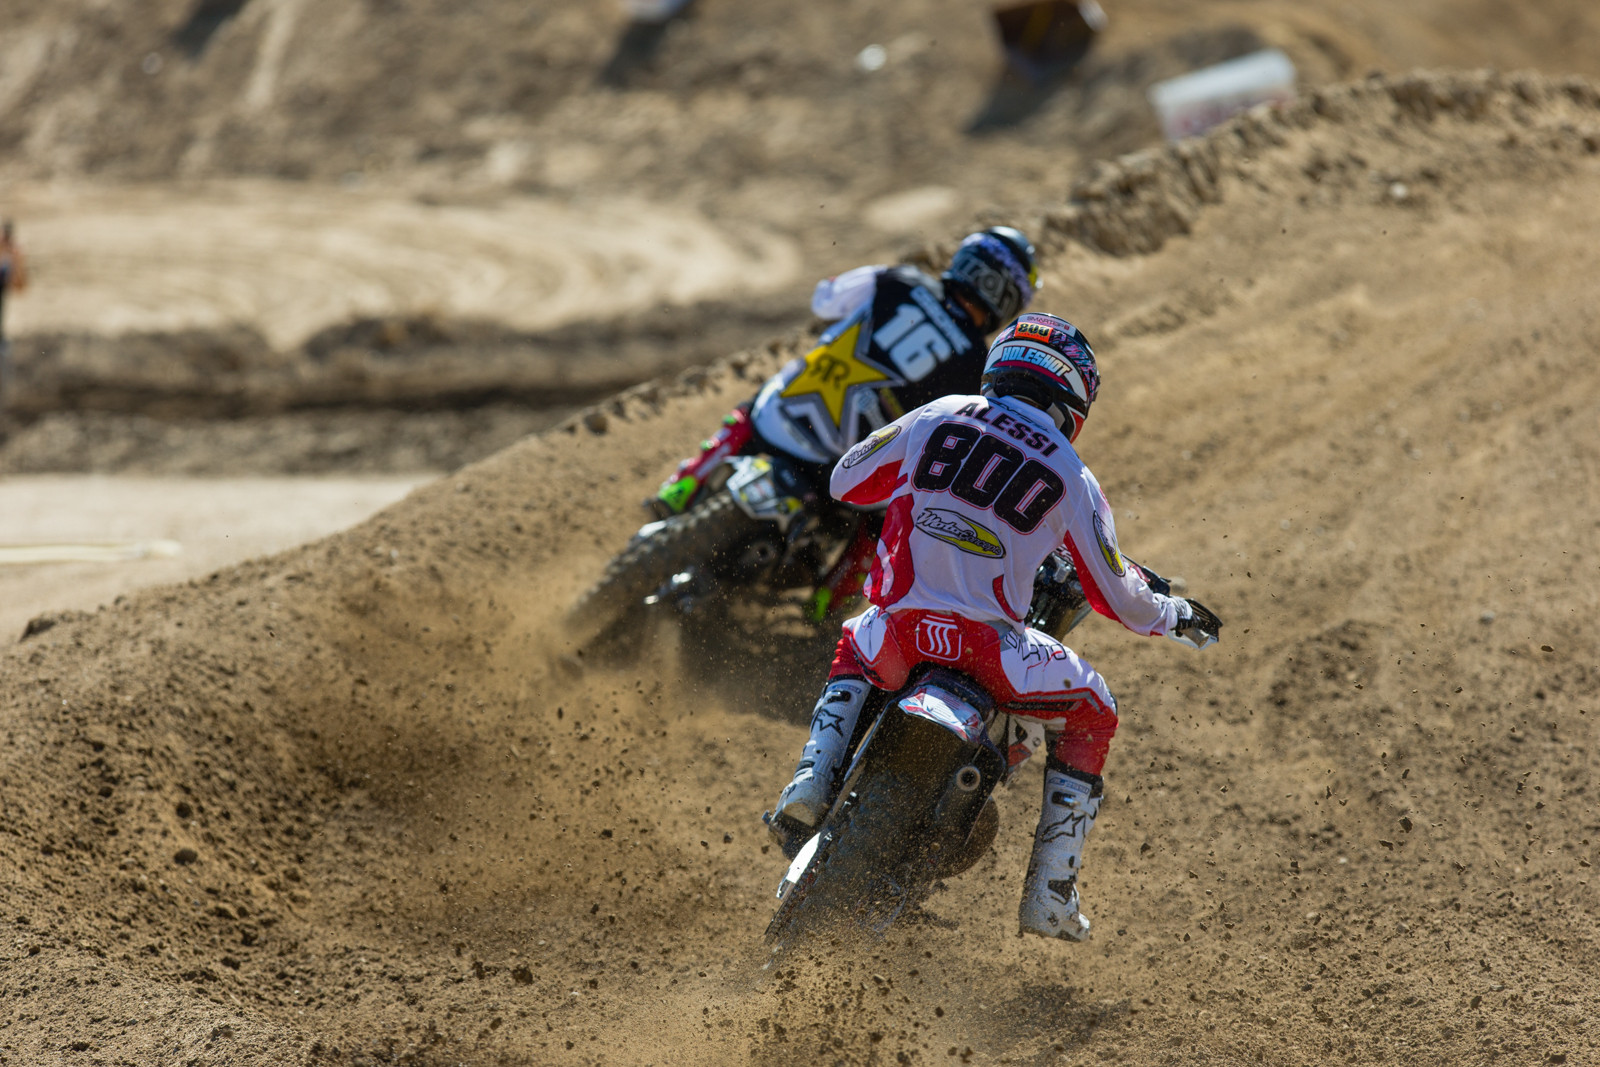 Zach Osborne and Mike Alessi - 2016 MTA World Two-Stroke Nationals - Motocross Pictures - Vital MX